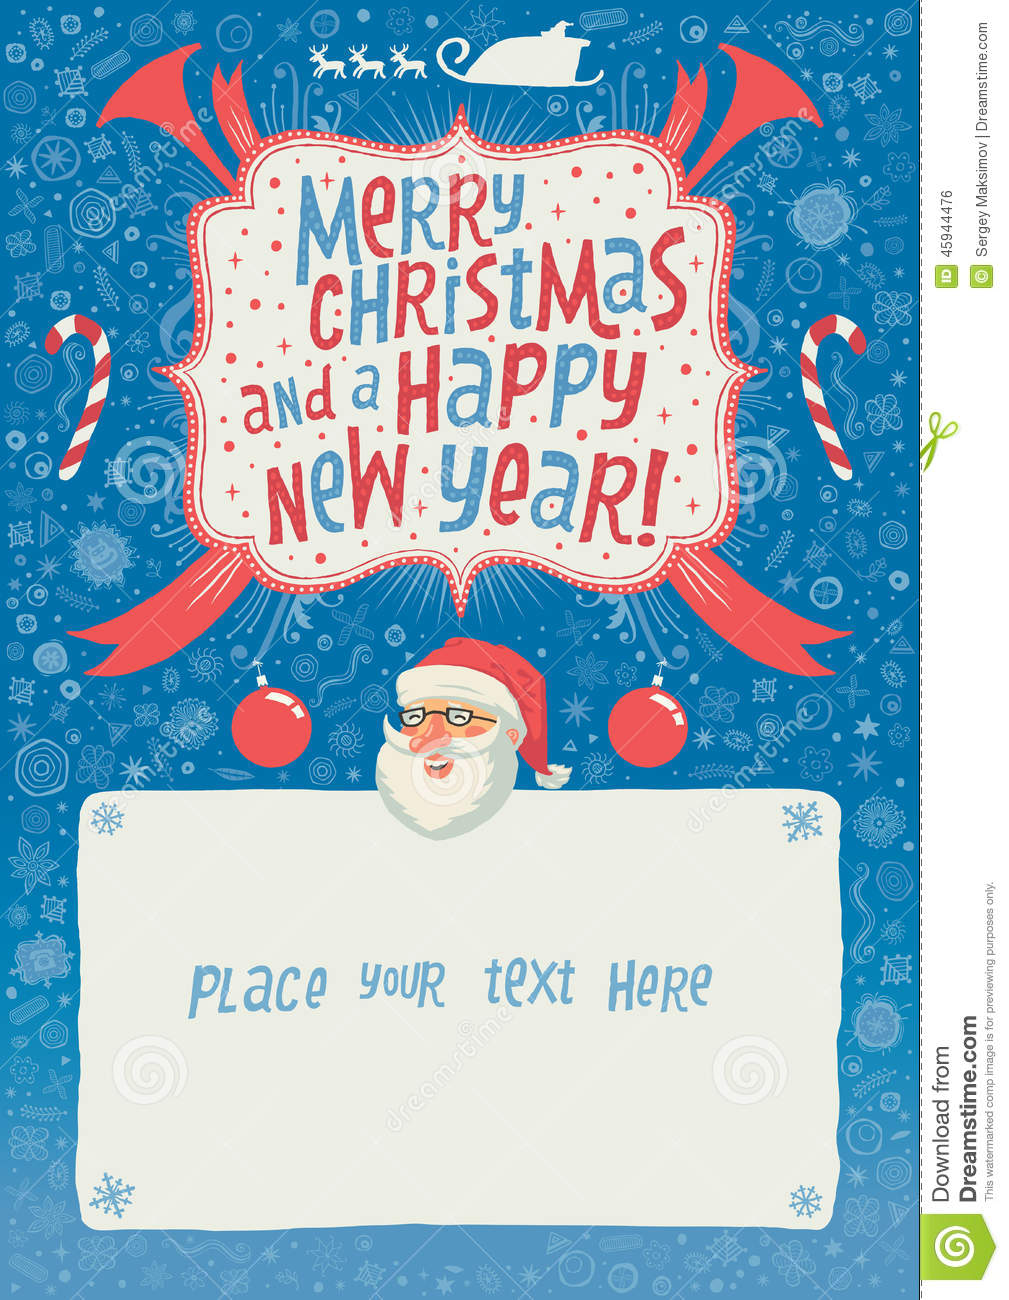 Merry christmas and a happy new year greeting card poster or merry christmas and a happy new year greeting card poster or background for party invitation with hand lettering typography authors illustration m4hsunfo